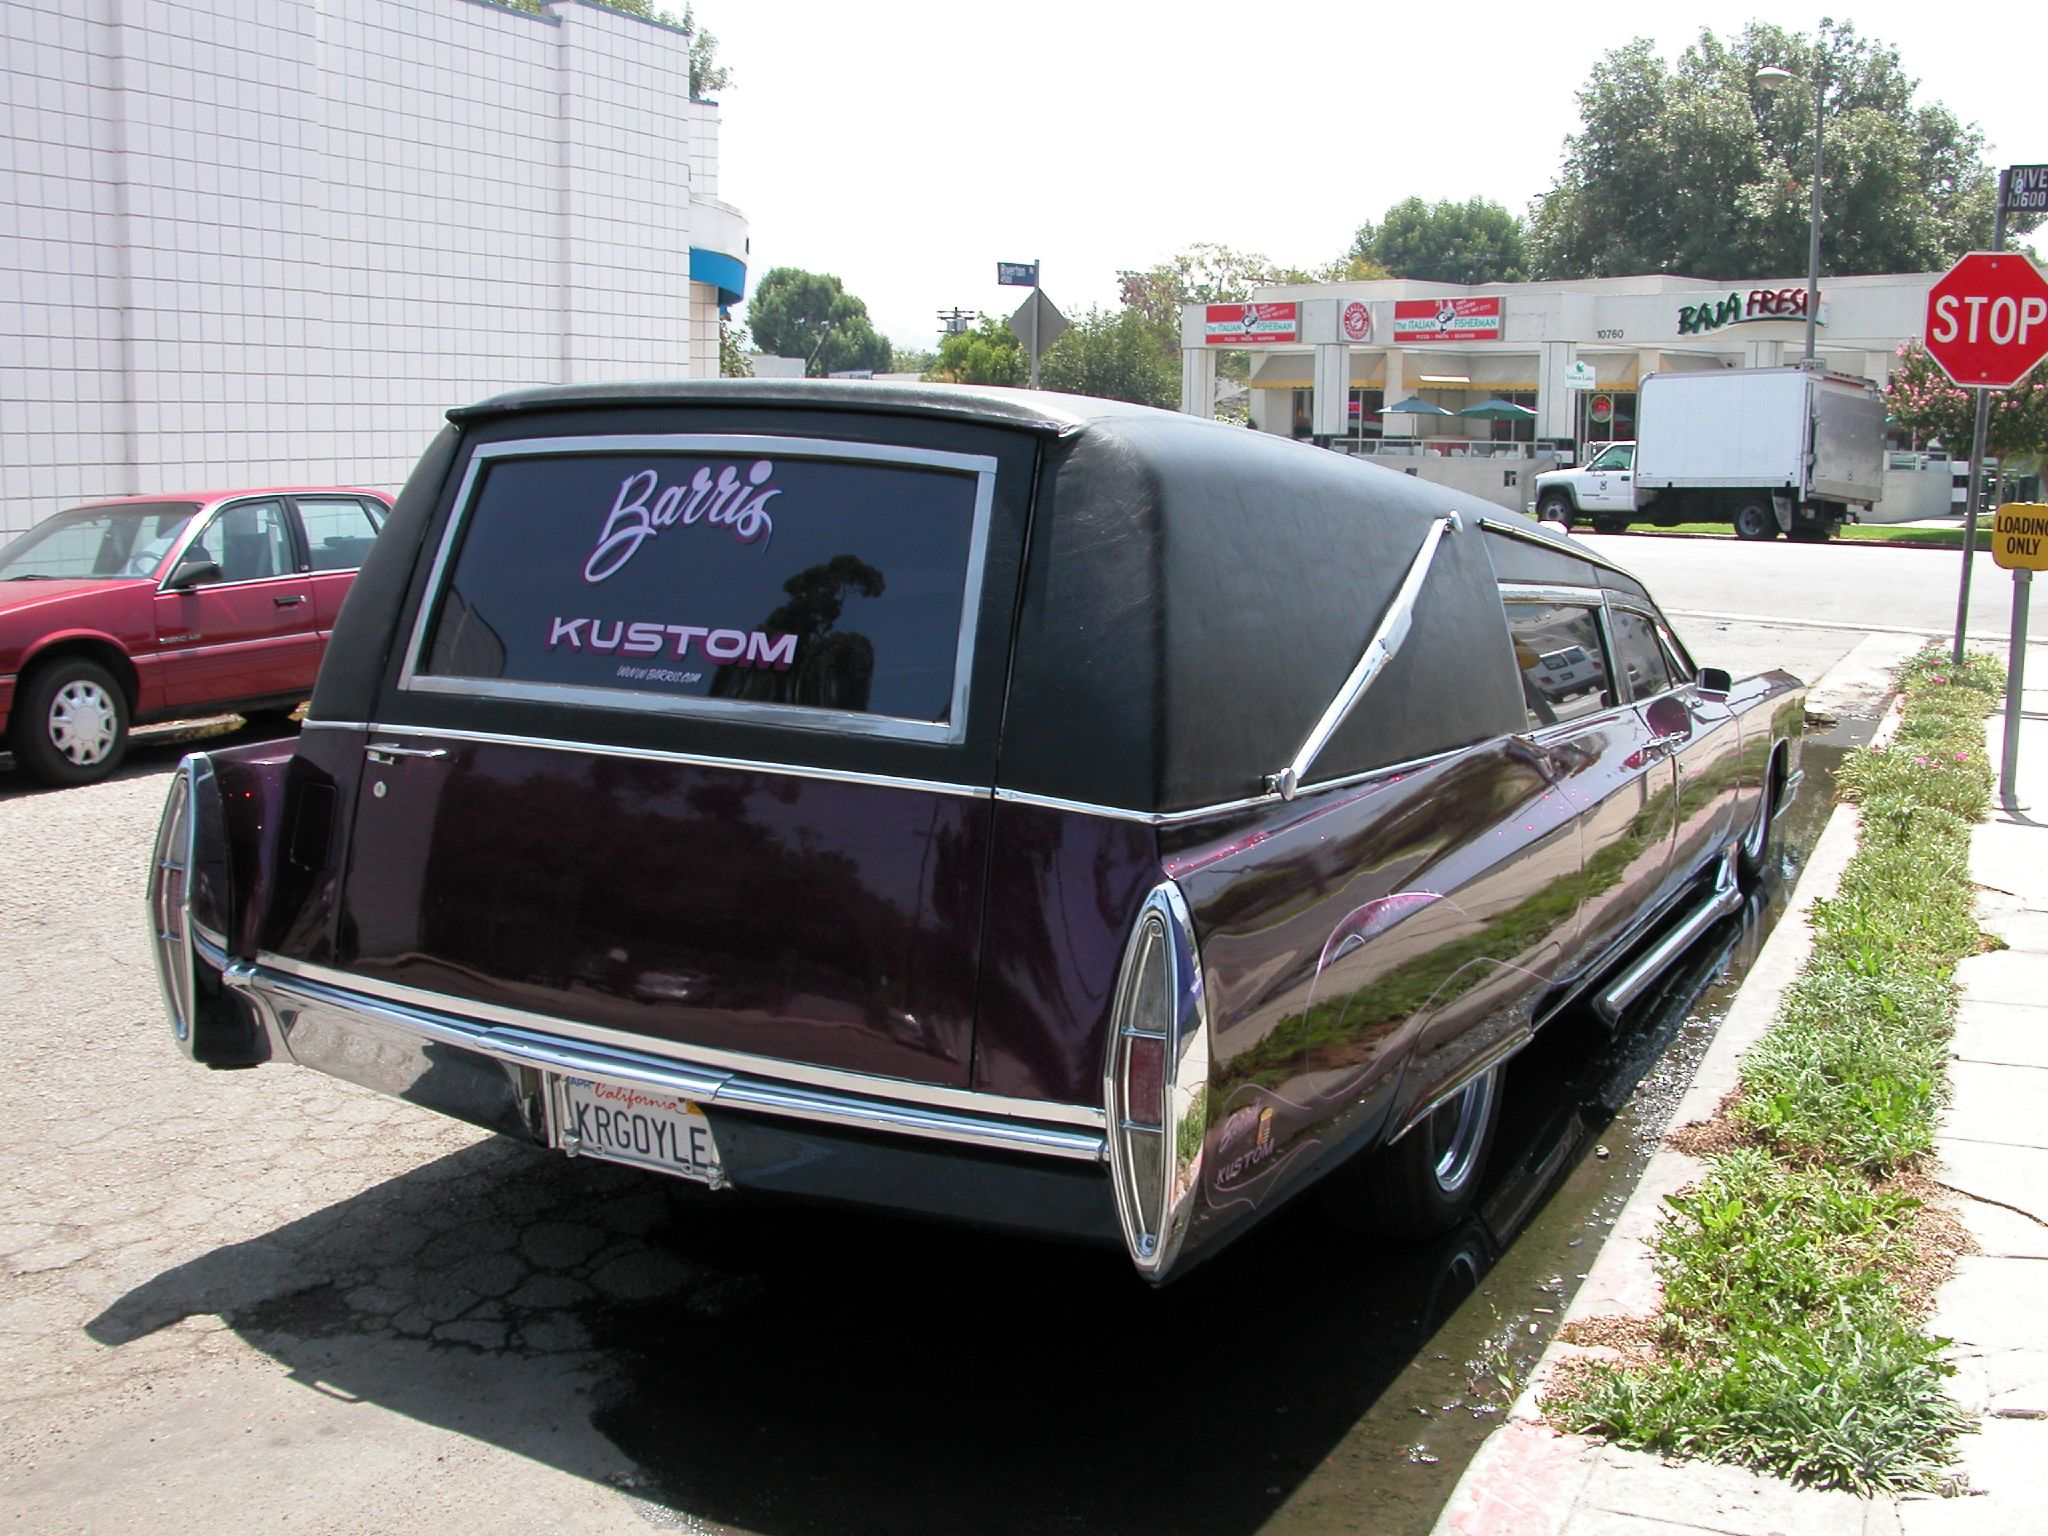 Barris' Kargoyle hearse without pinstripes on the trunk.